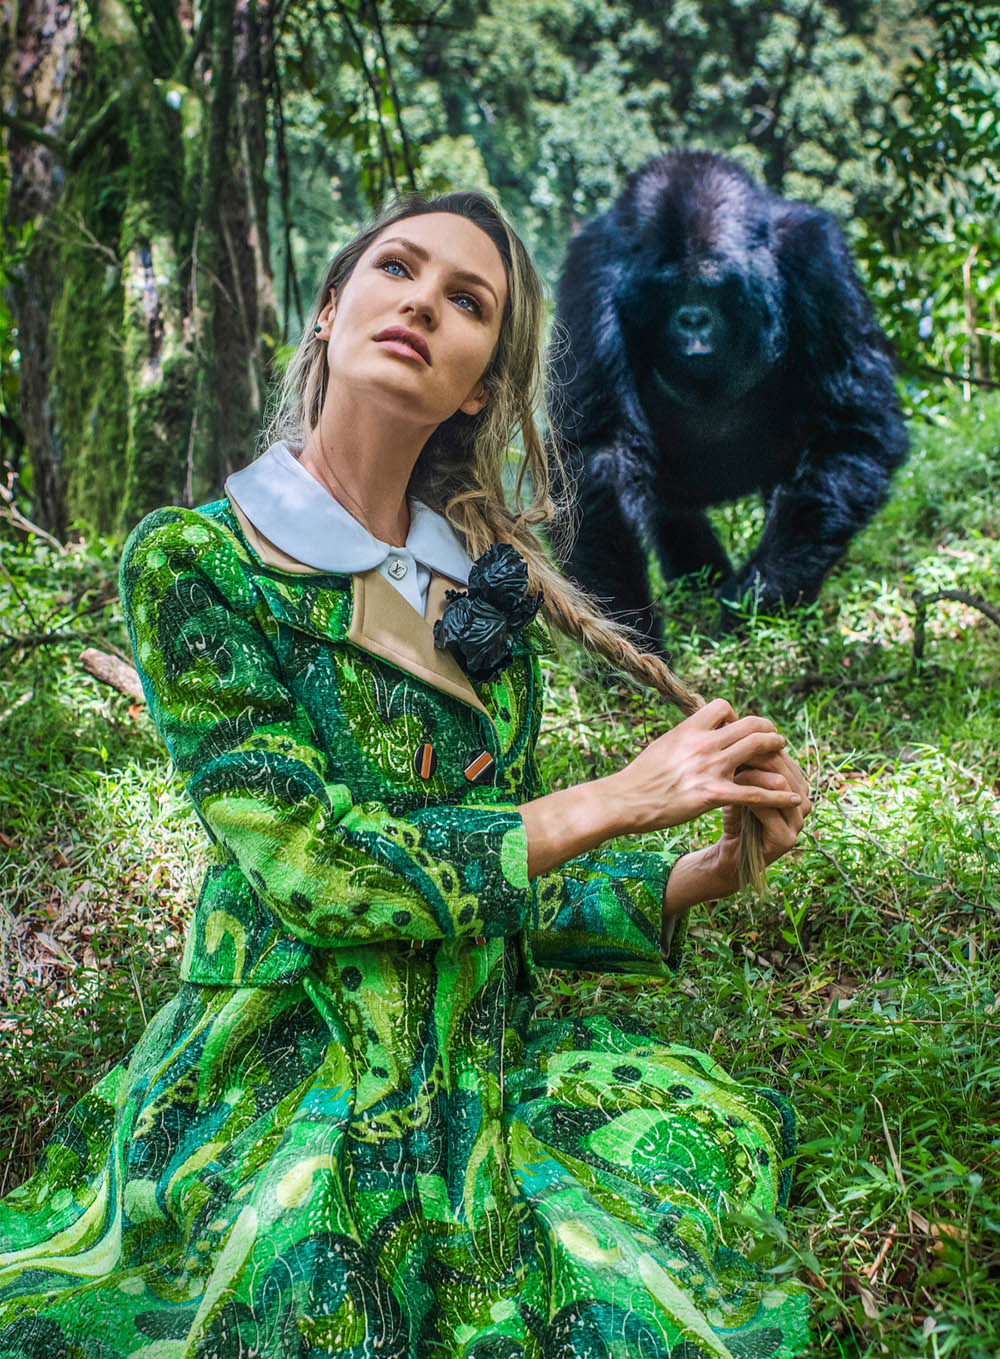 Candice Swanepoel by David Yarrow for Harper's Bazaar US May 2020